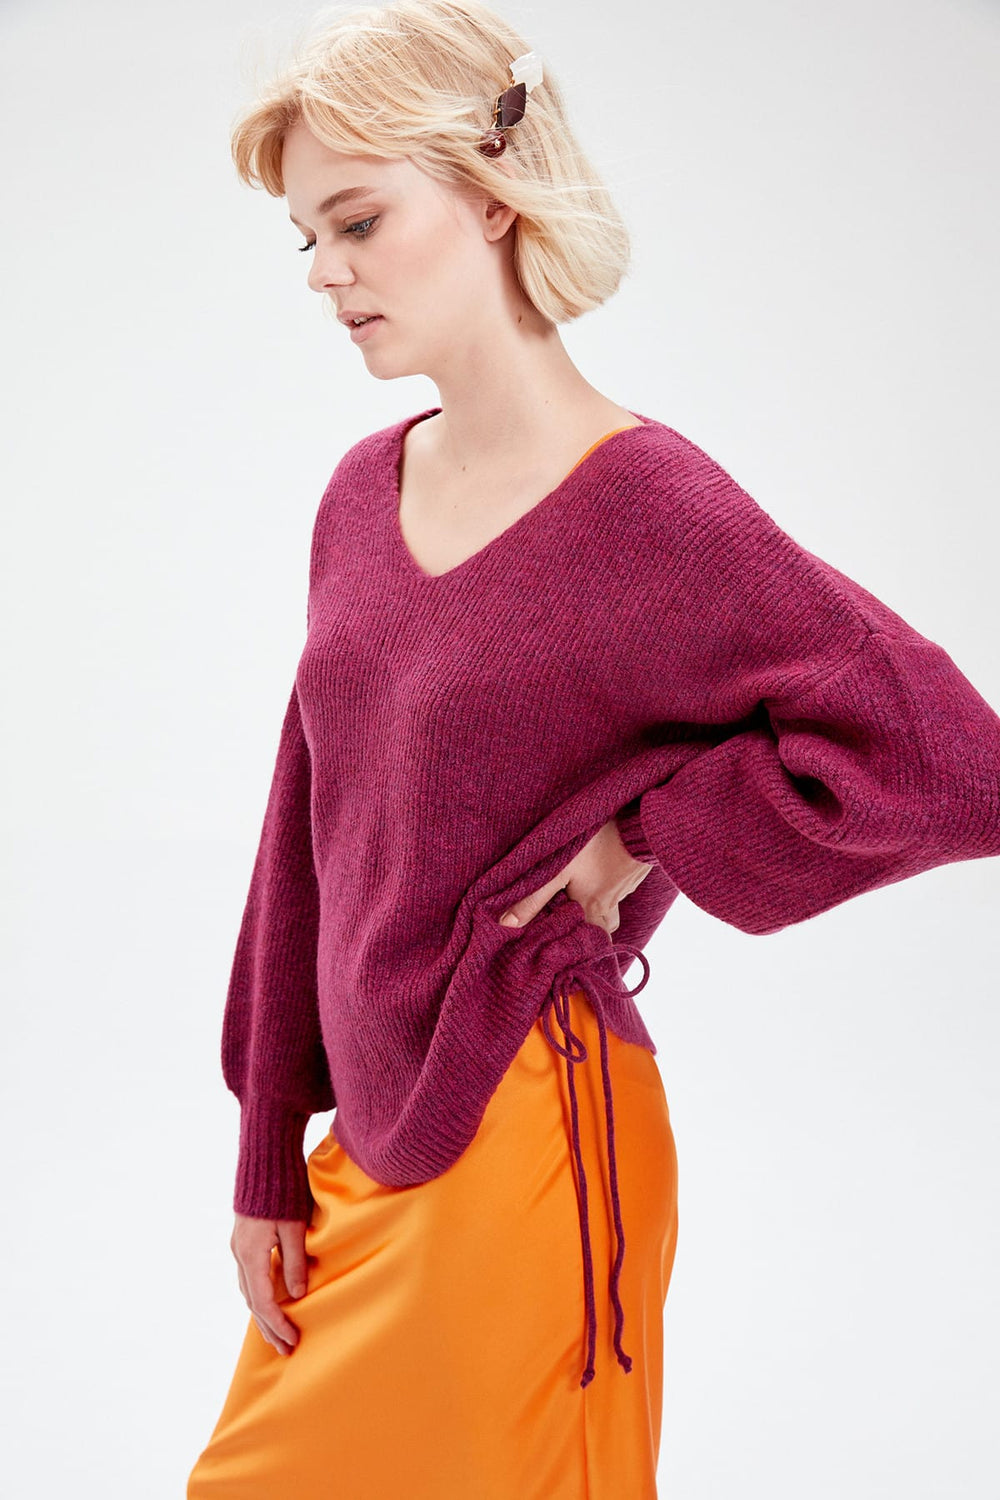 WOMEN-Plum Red V-Neck Lacing Detailed Knitwear Sweater - Top Maxy